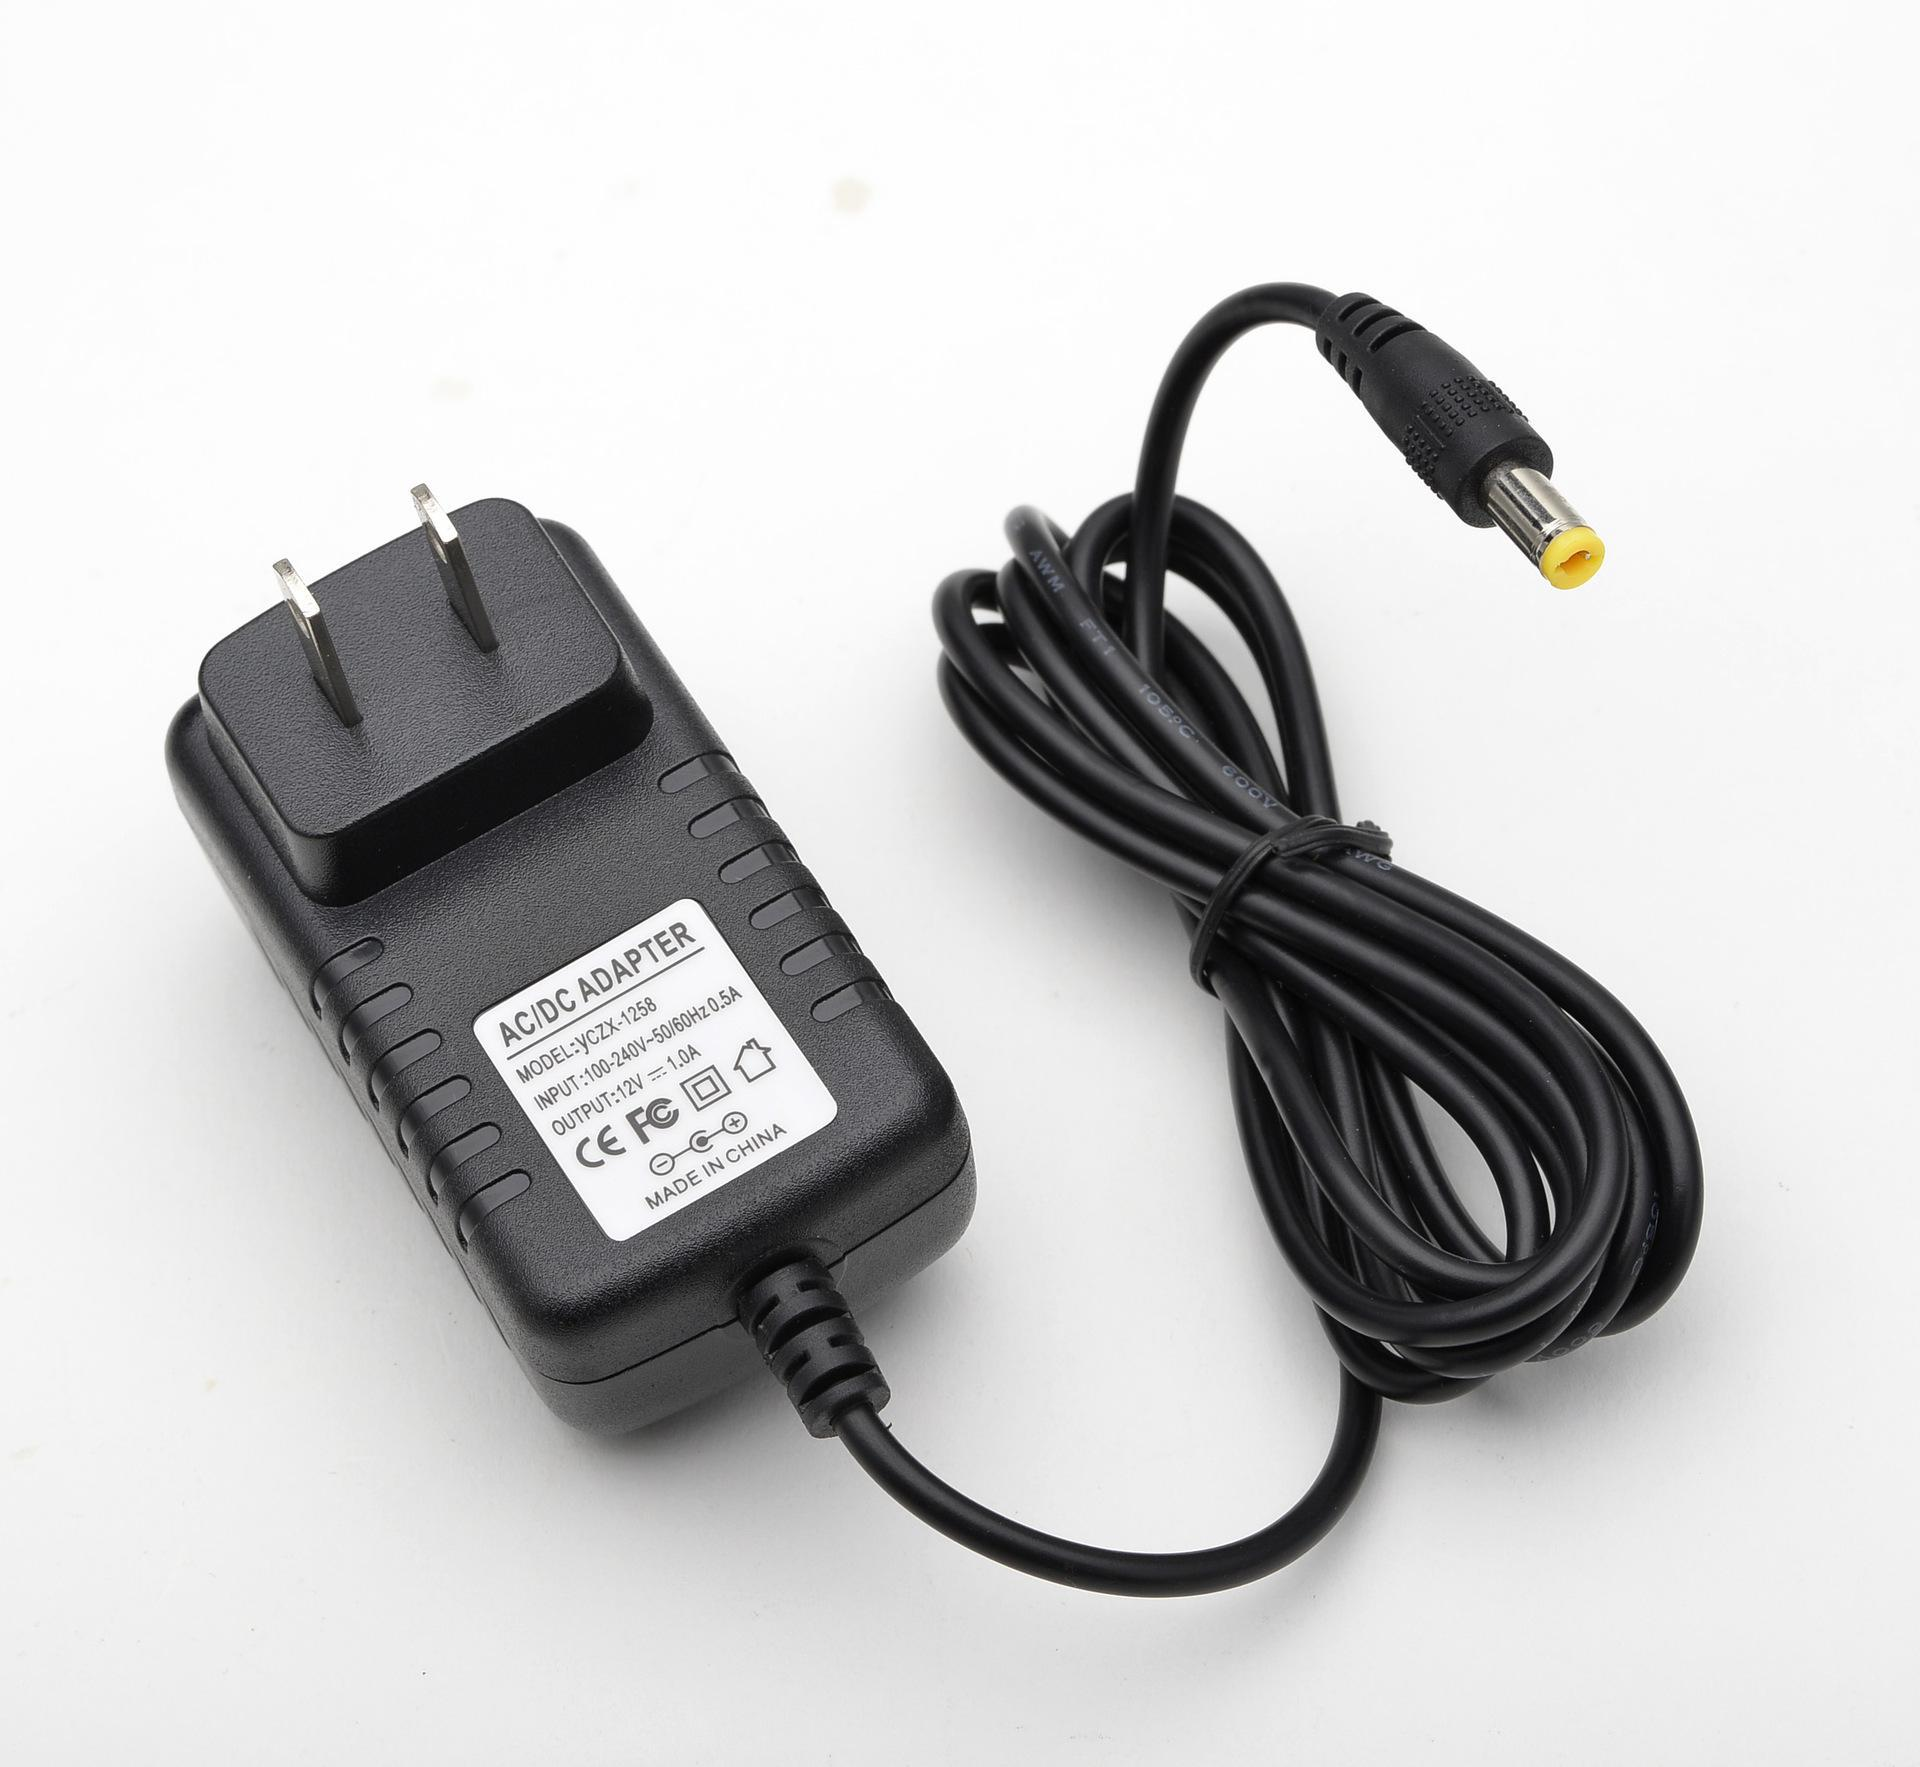 12V 2A AC/DC Adapter Power Supply for Security CCTV DVR Camera US 12v 5a 8ch power supply adapter work for cctv suveillance camera system dc 12v power supply 8 port dc pigtail coat